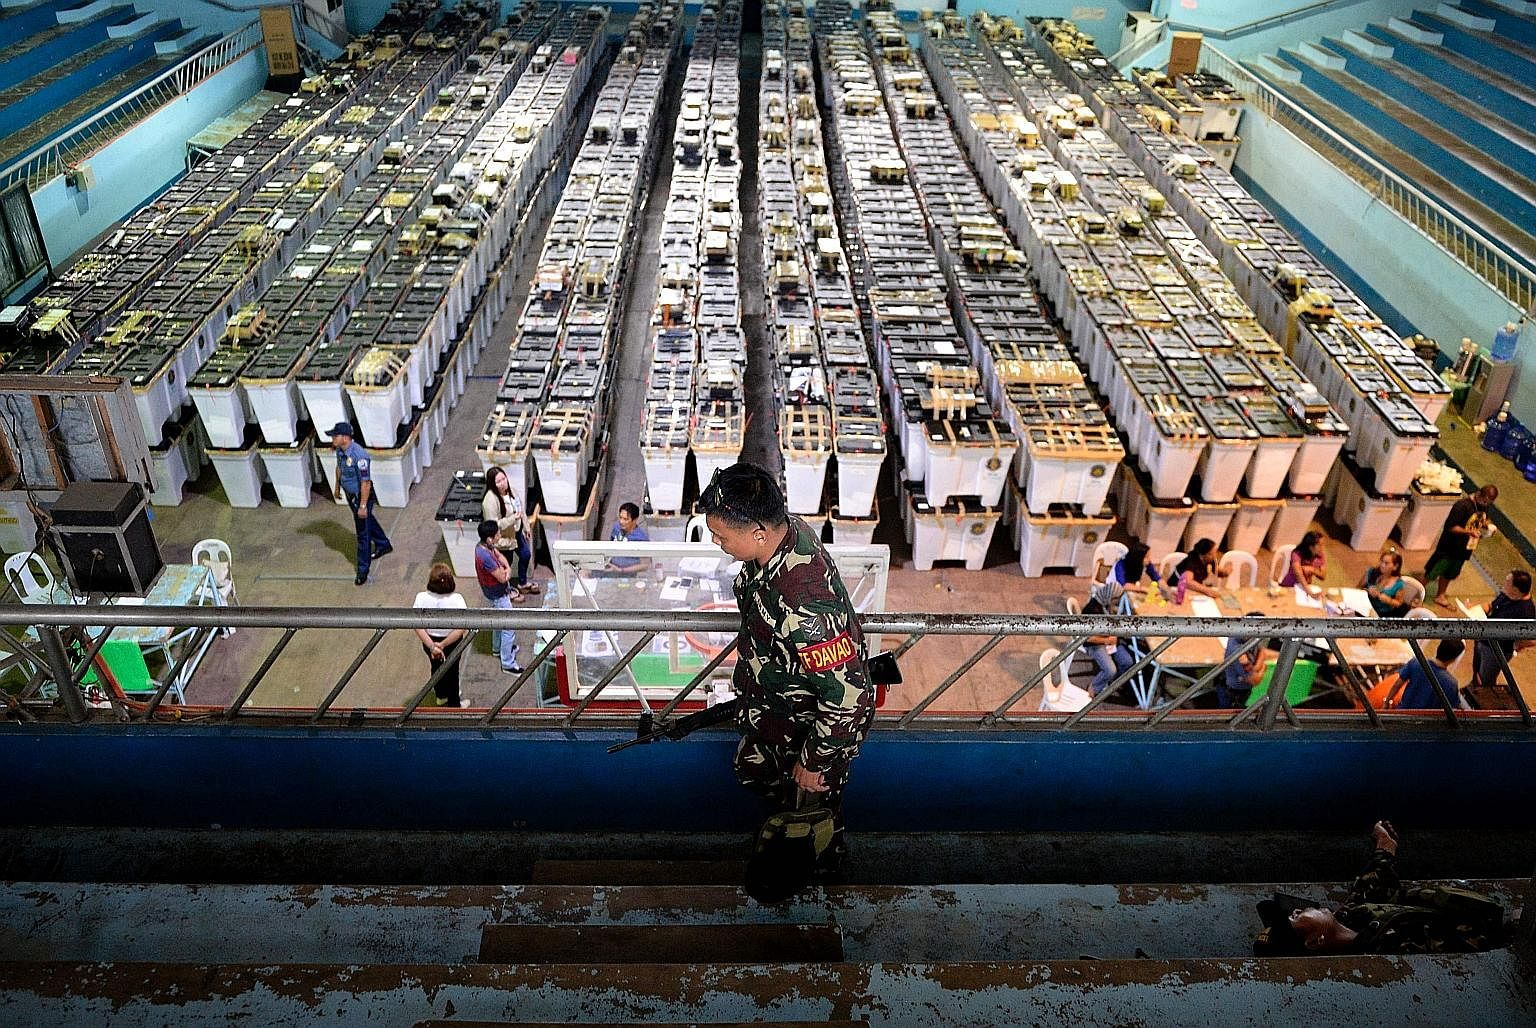 A soldier patrolling near election paraphernalia at Almendras Gym in Davao city, on the southern Philippine island of Mindanao, yesterday. In Monday's presidential election, Mr Duterte beat four other candidates after winning the support of the middl